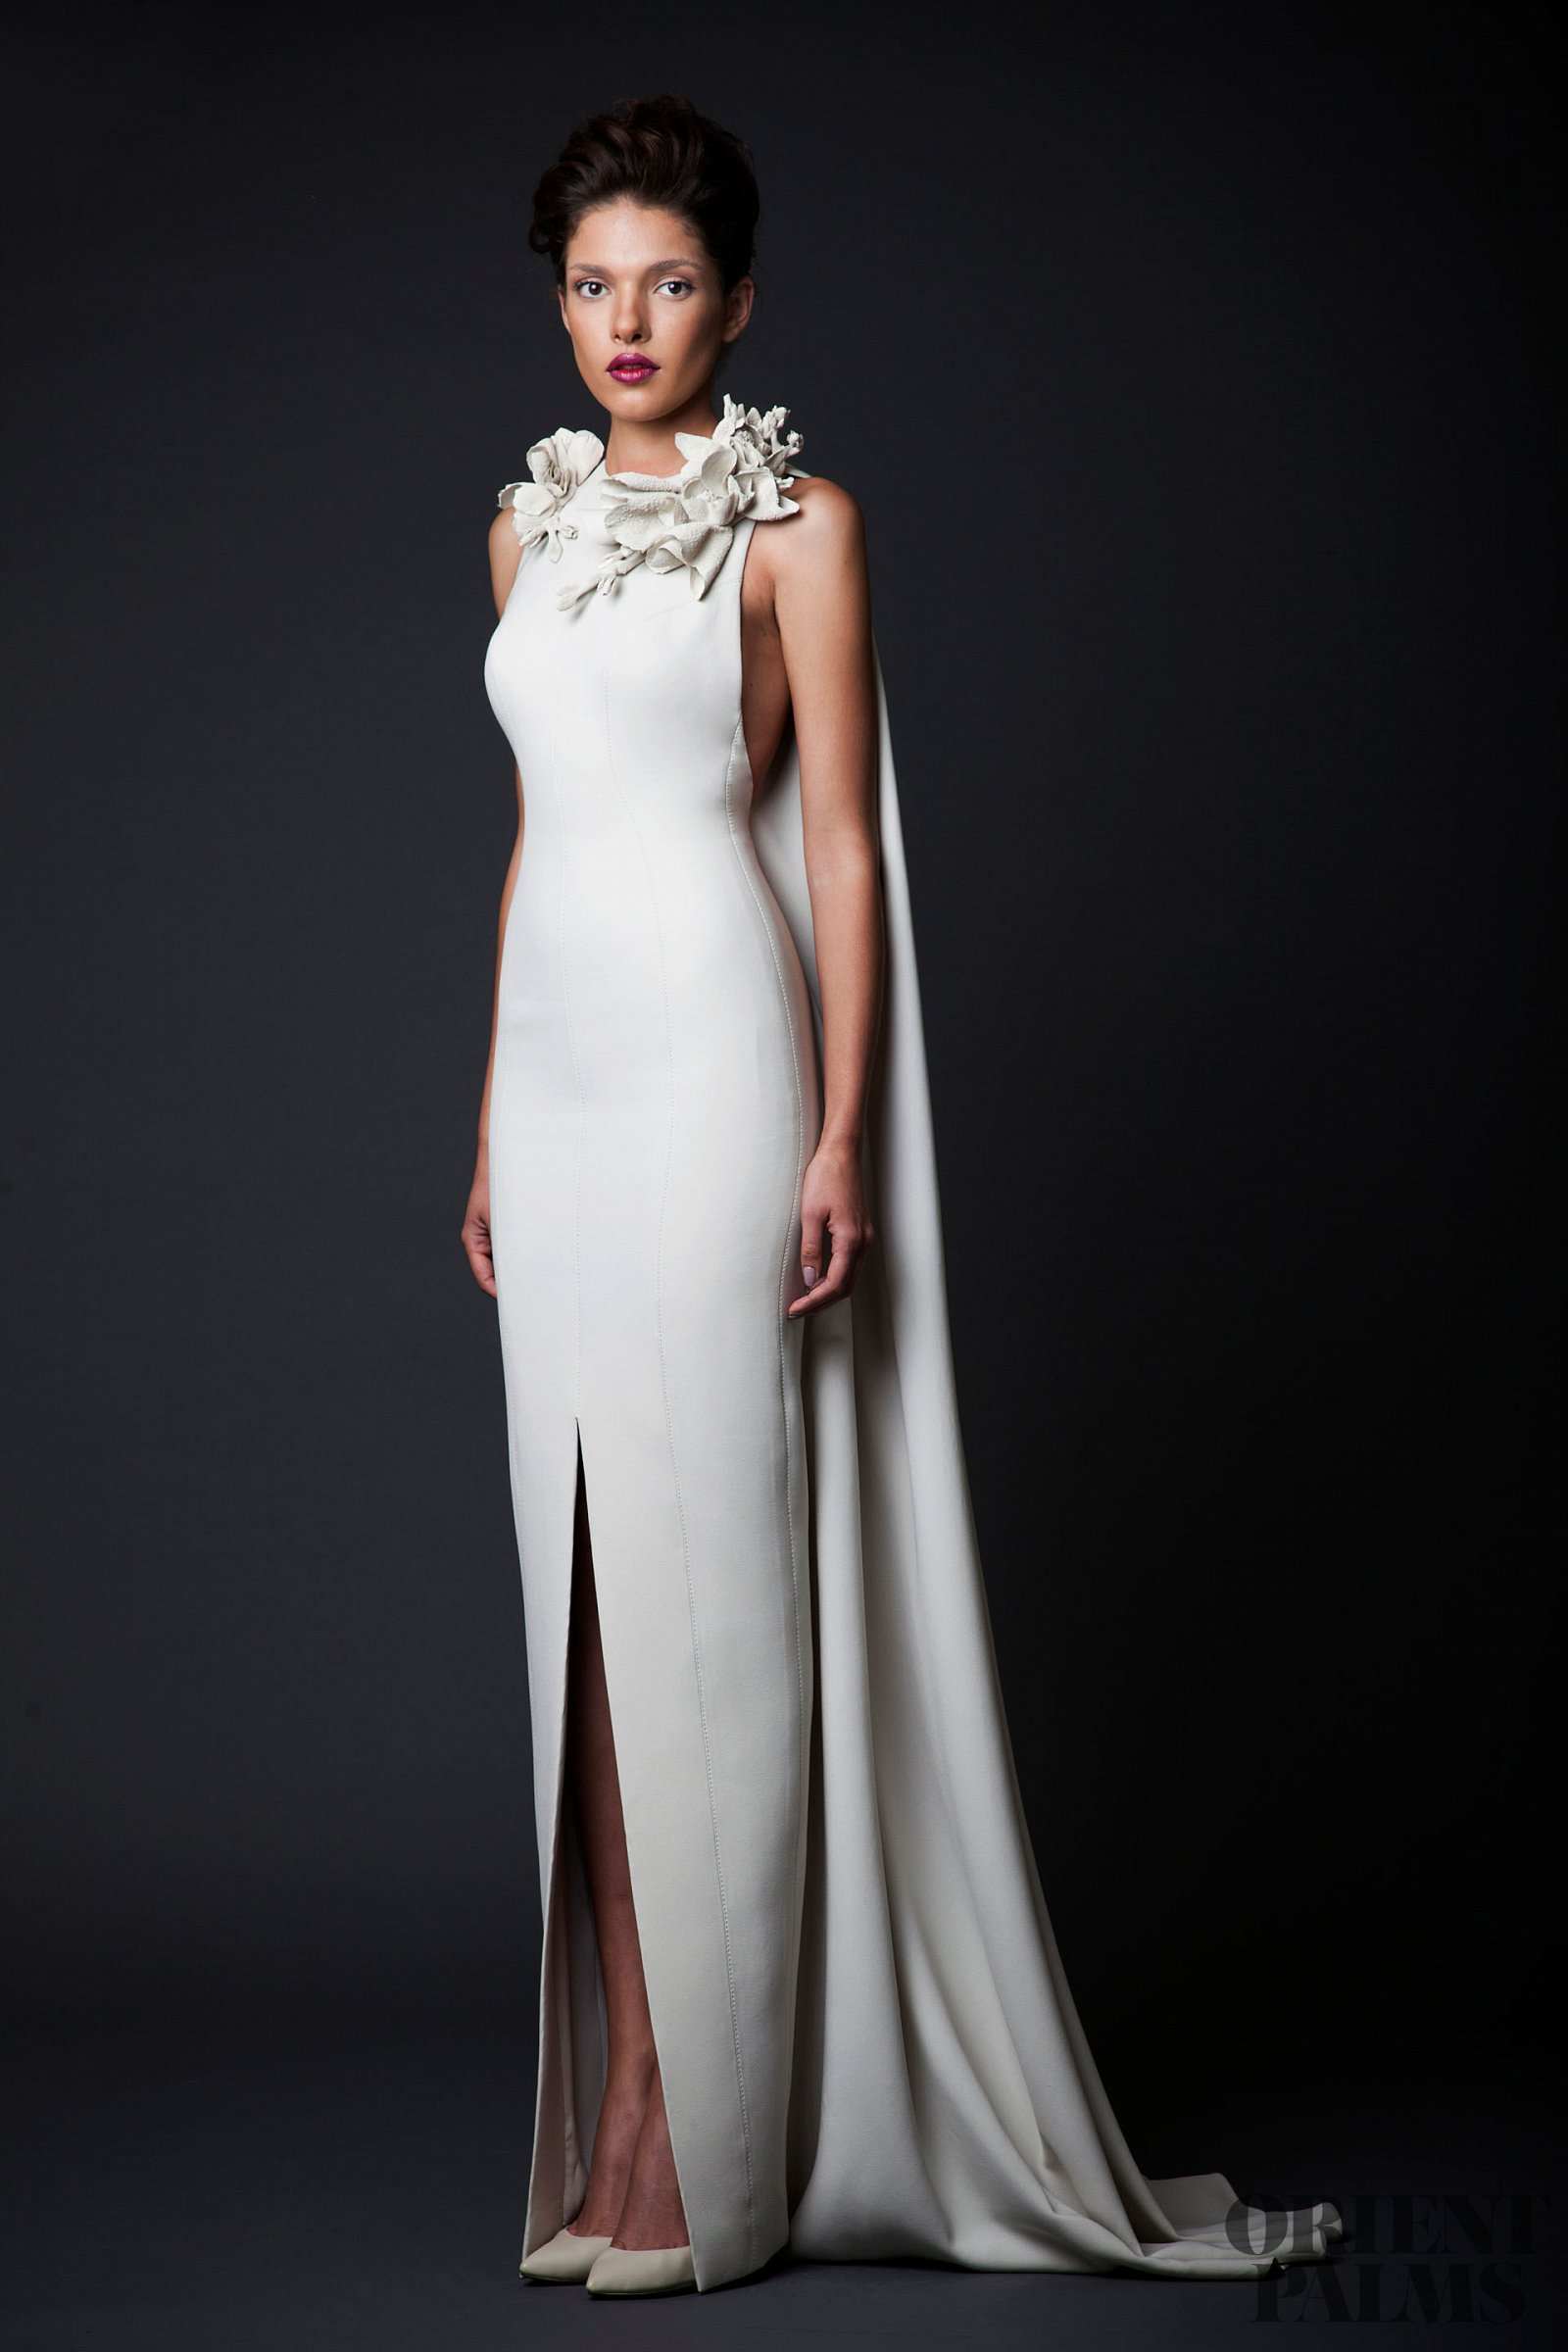 Krikor jabotian amal f w 2014 2015 couture for Haute couture meaning in english